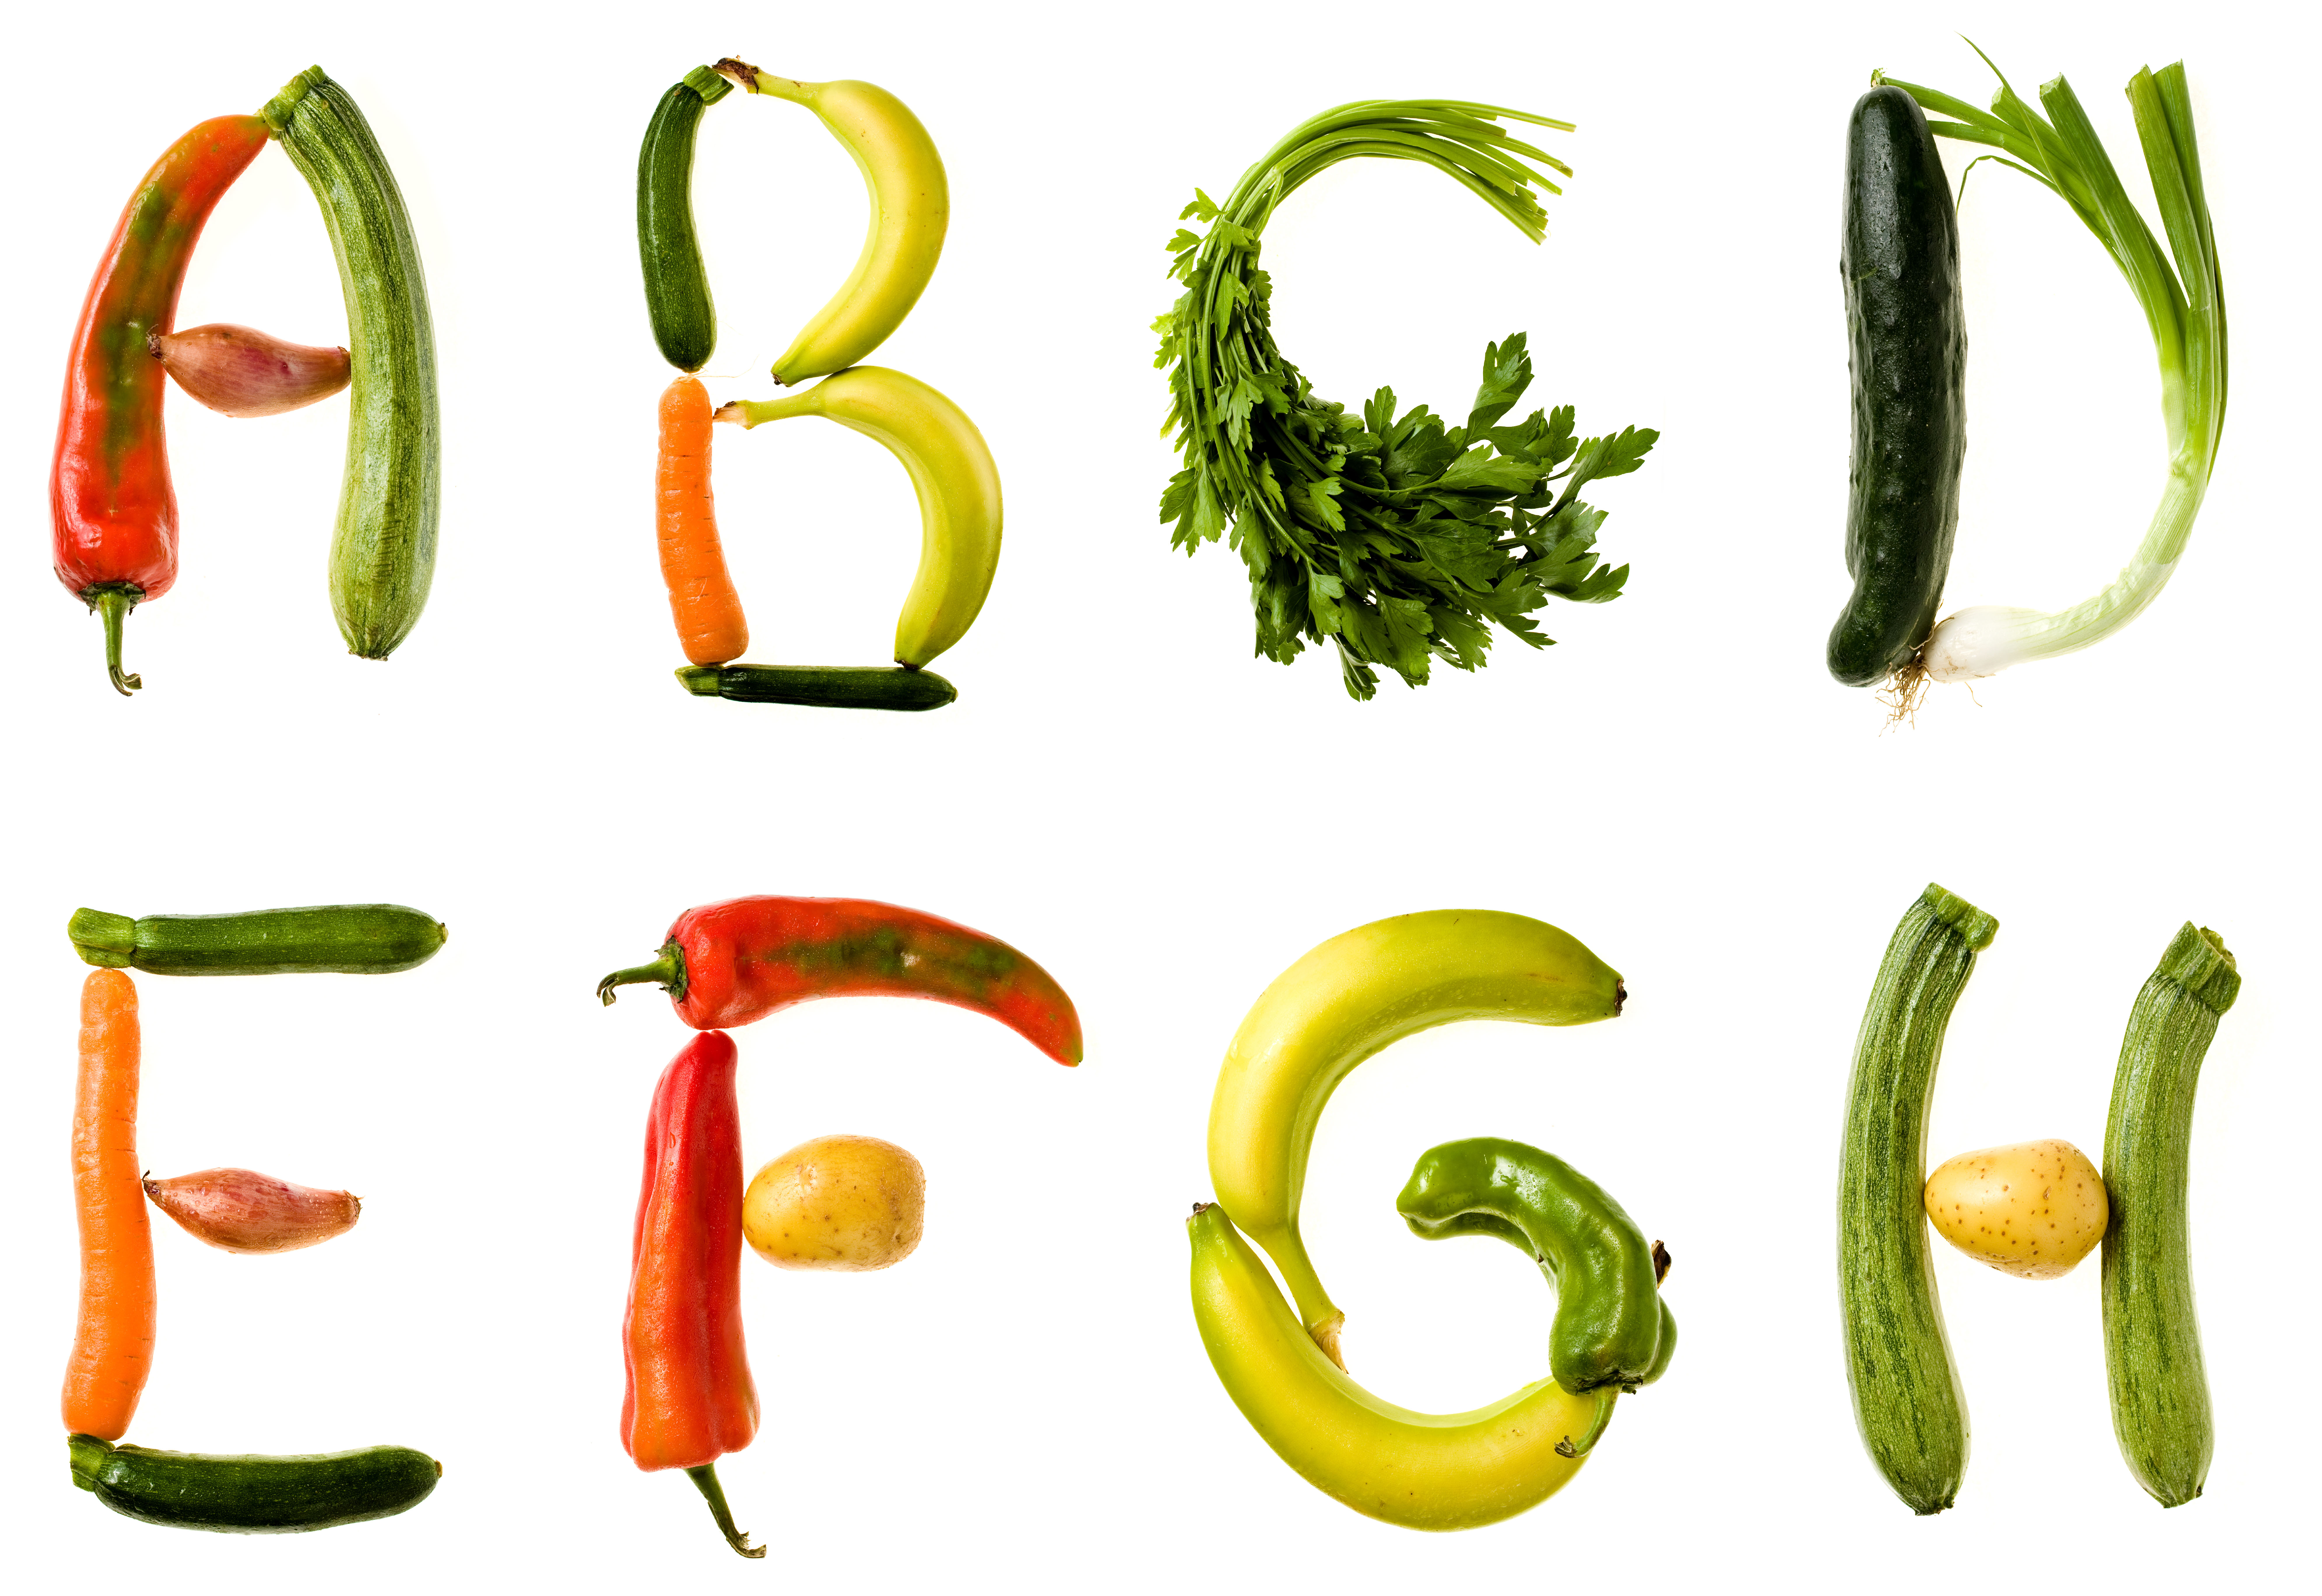 alphabet letters spelled out using food